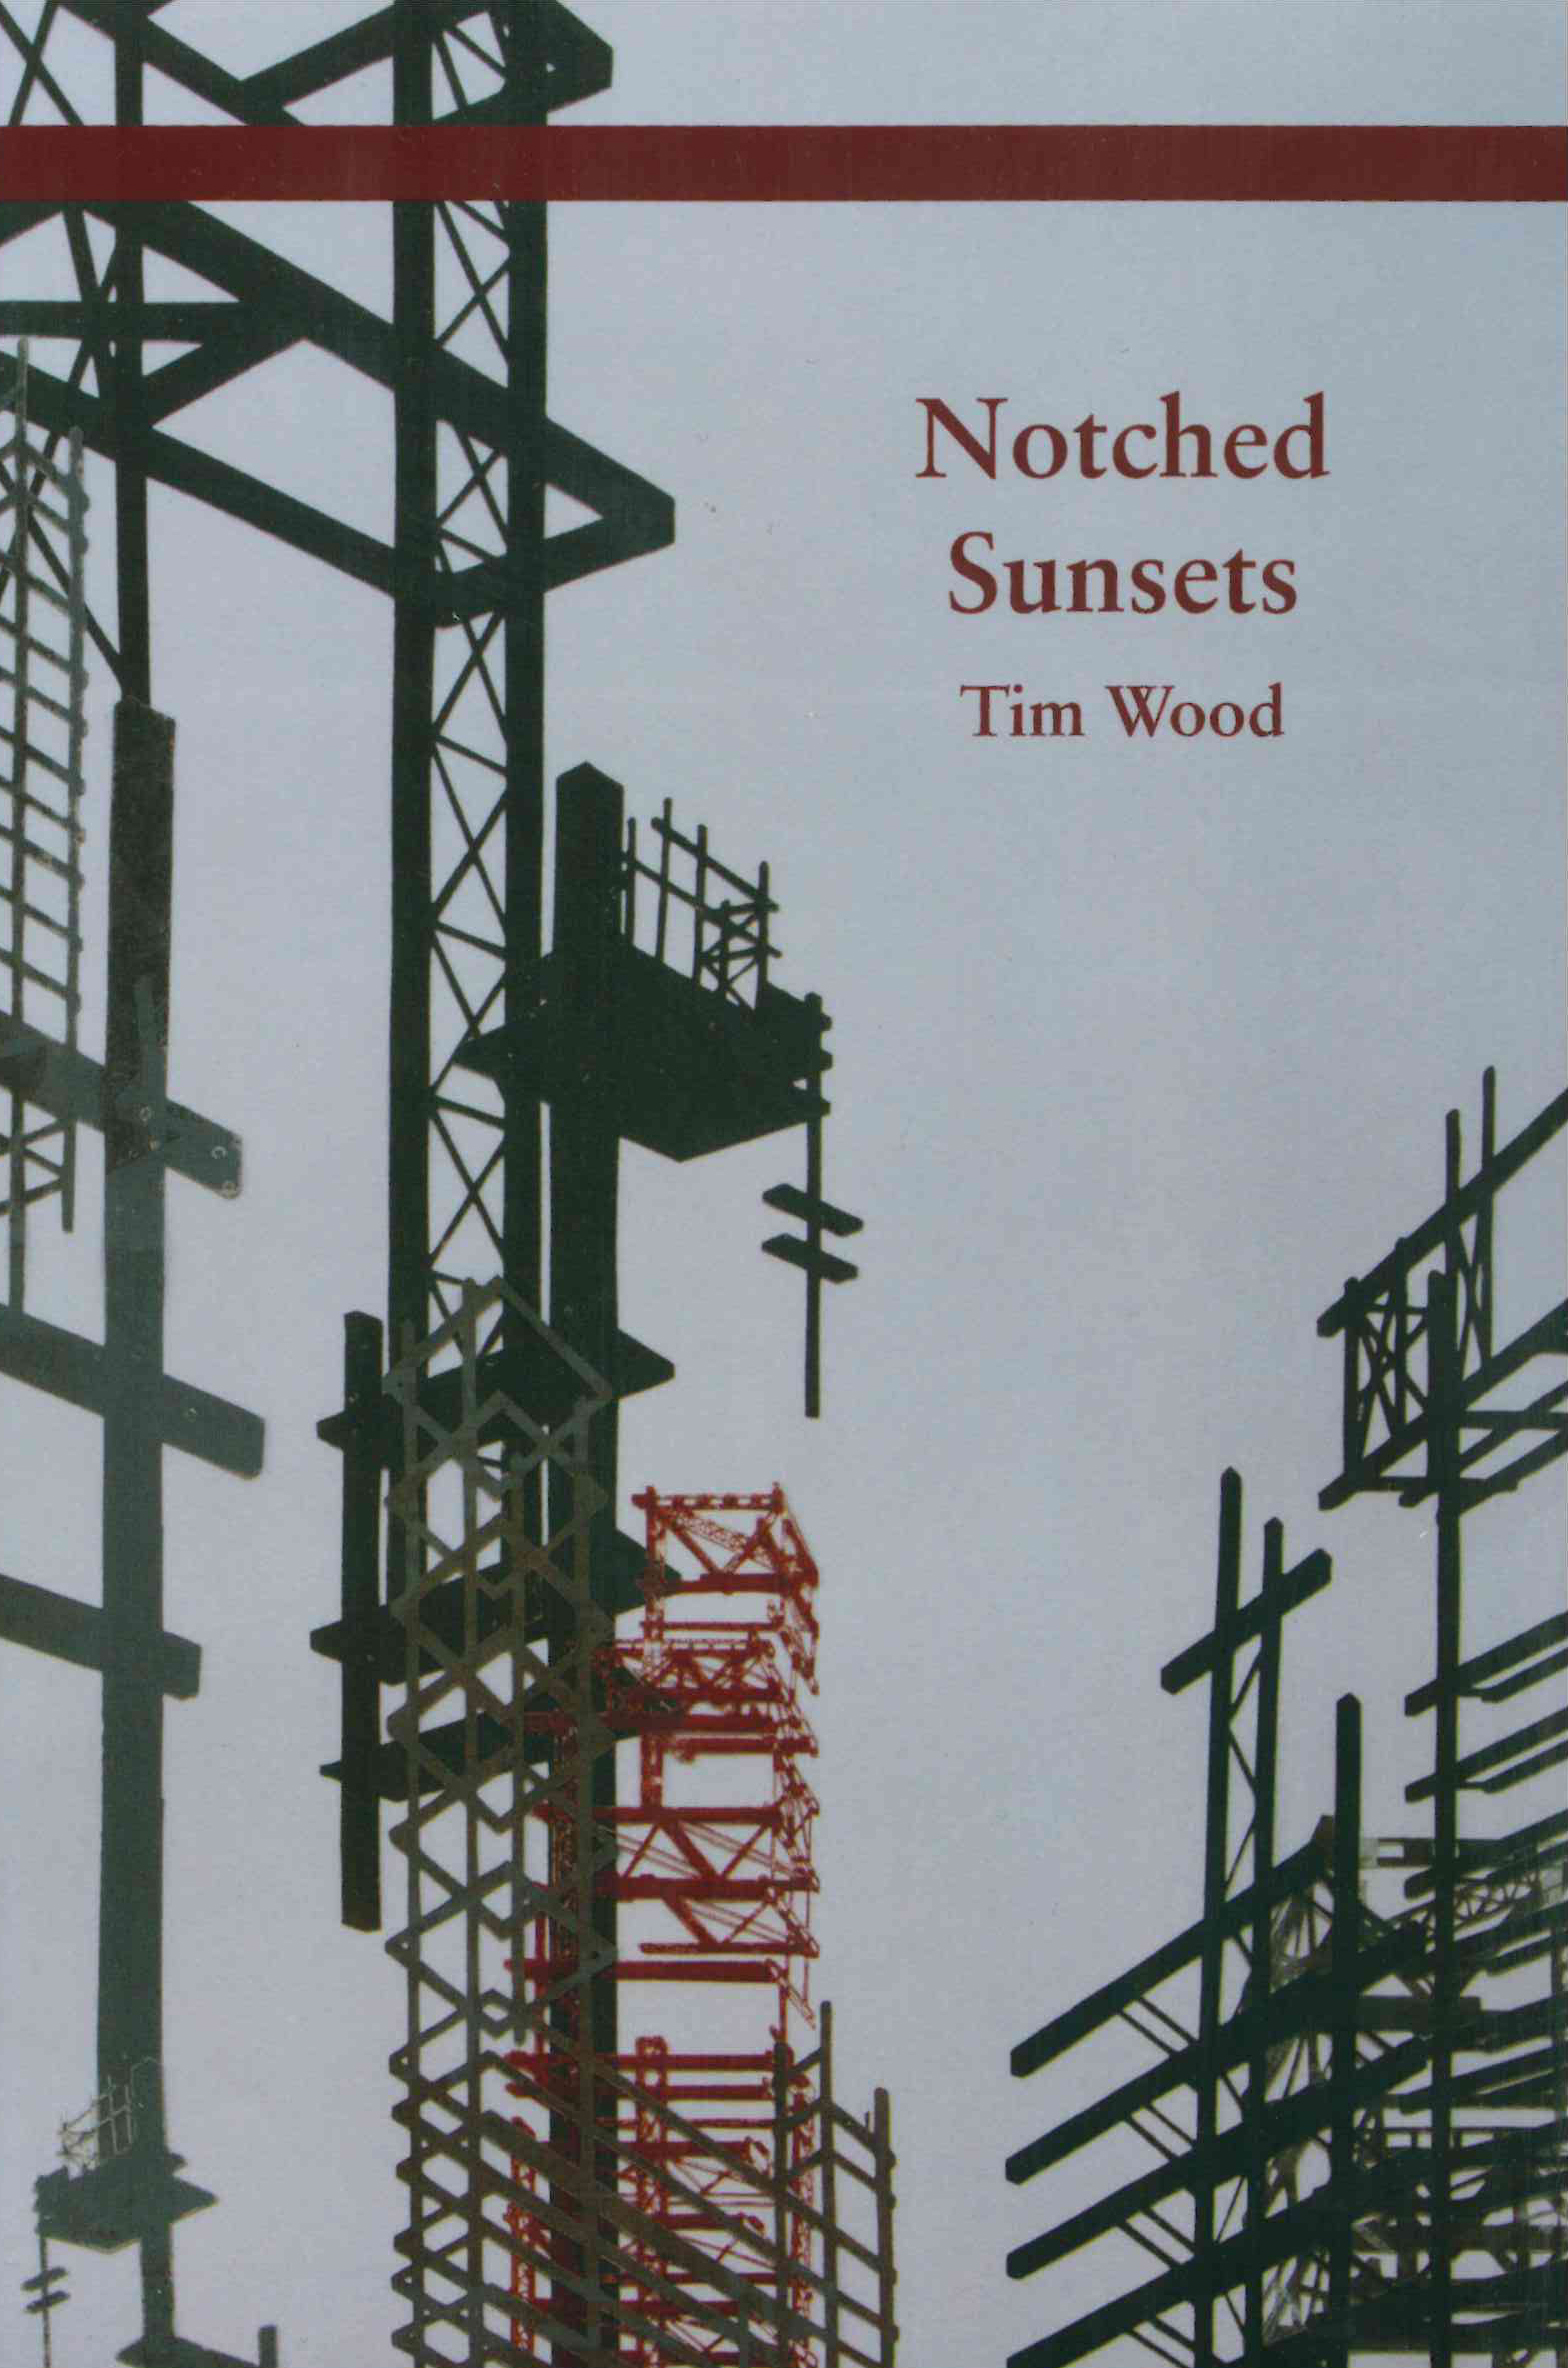 Notched Sunsets Tim Wood